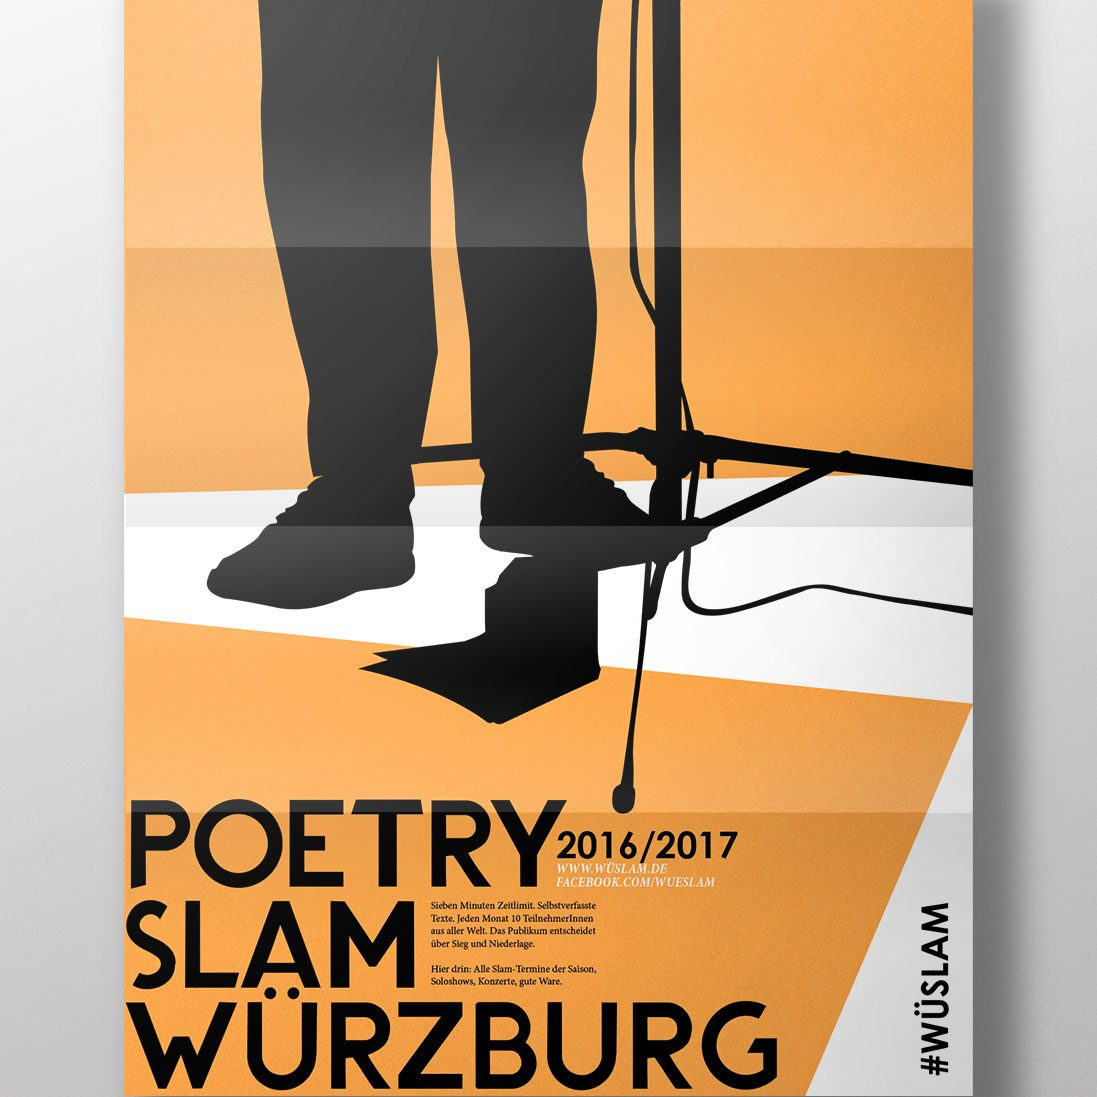 Poetry Slam Grafikdesign Würzburg